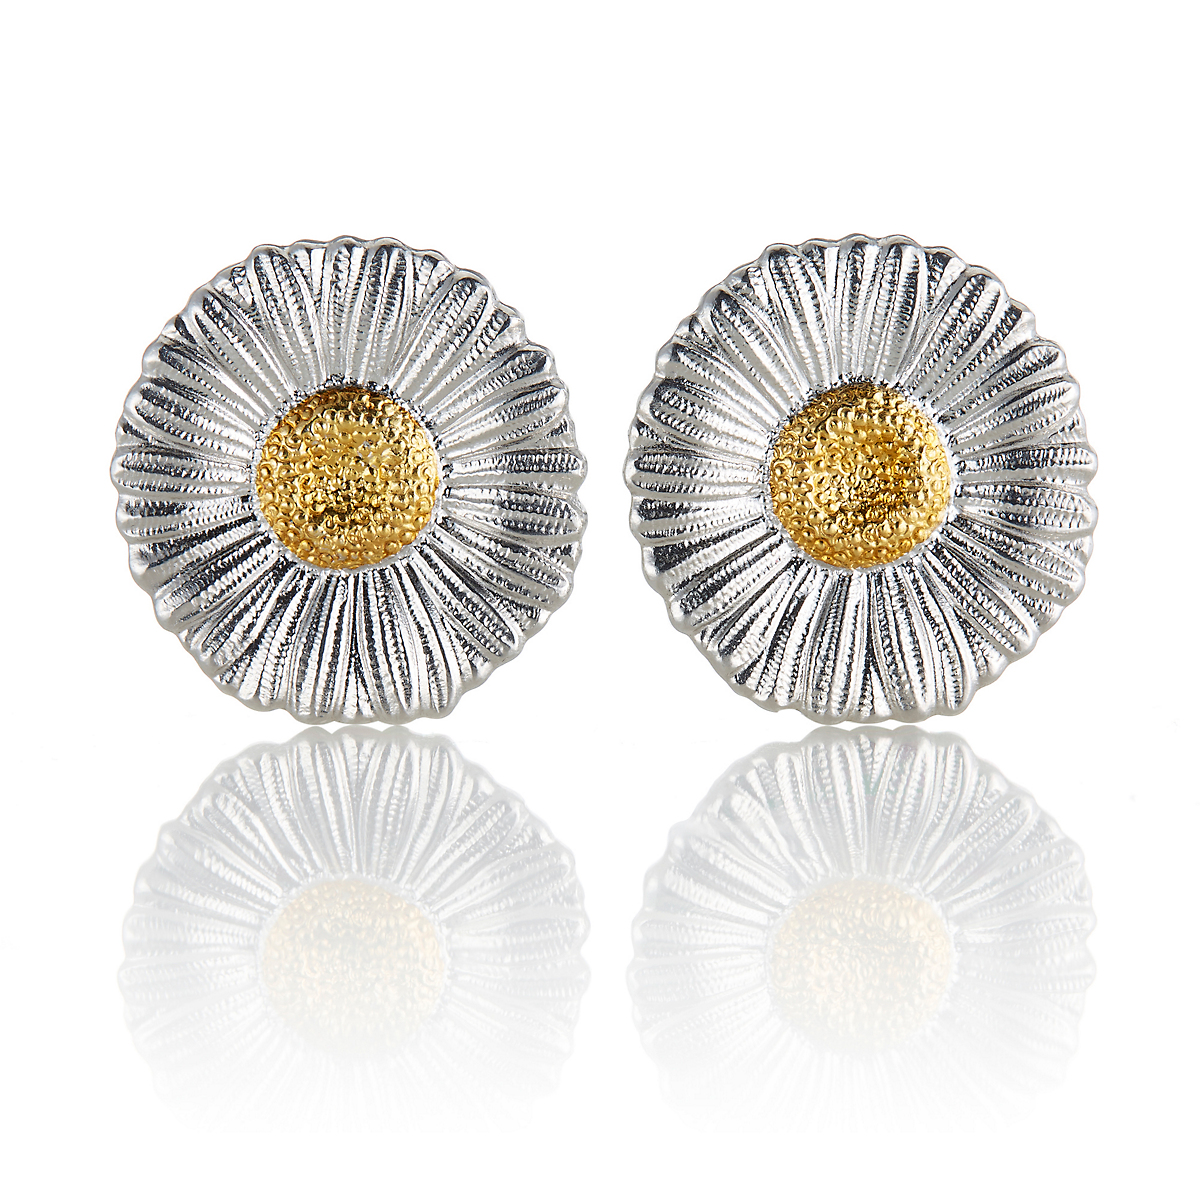 Buccellati Small Daisy Blossom Stud Earrings